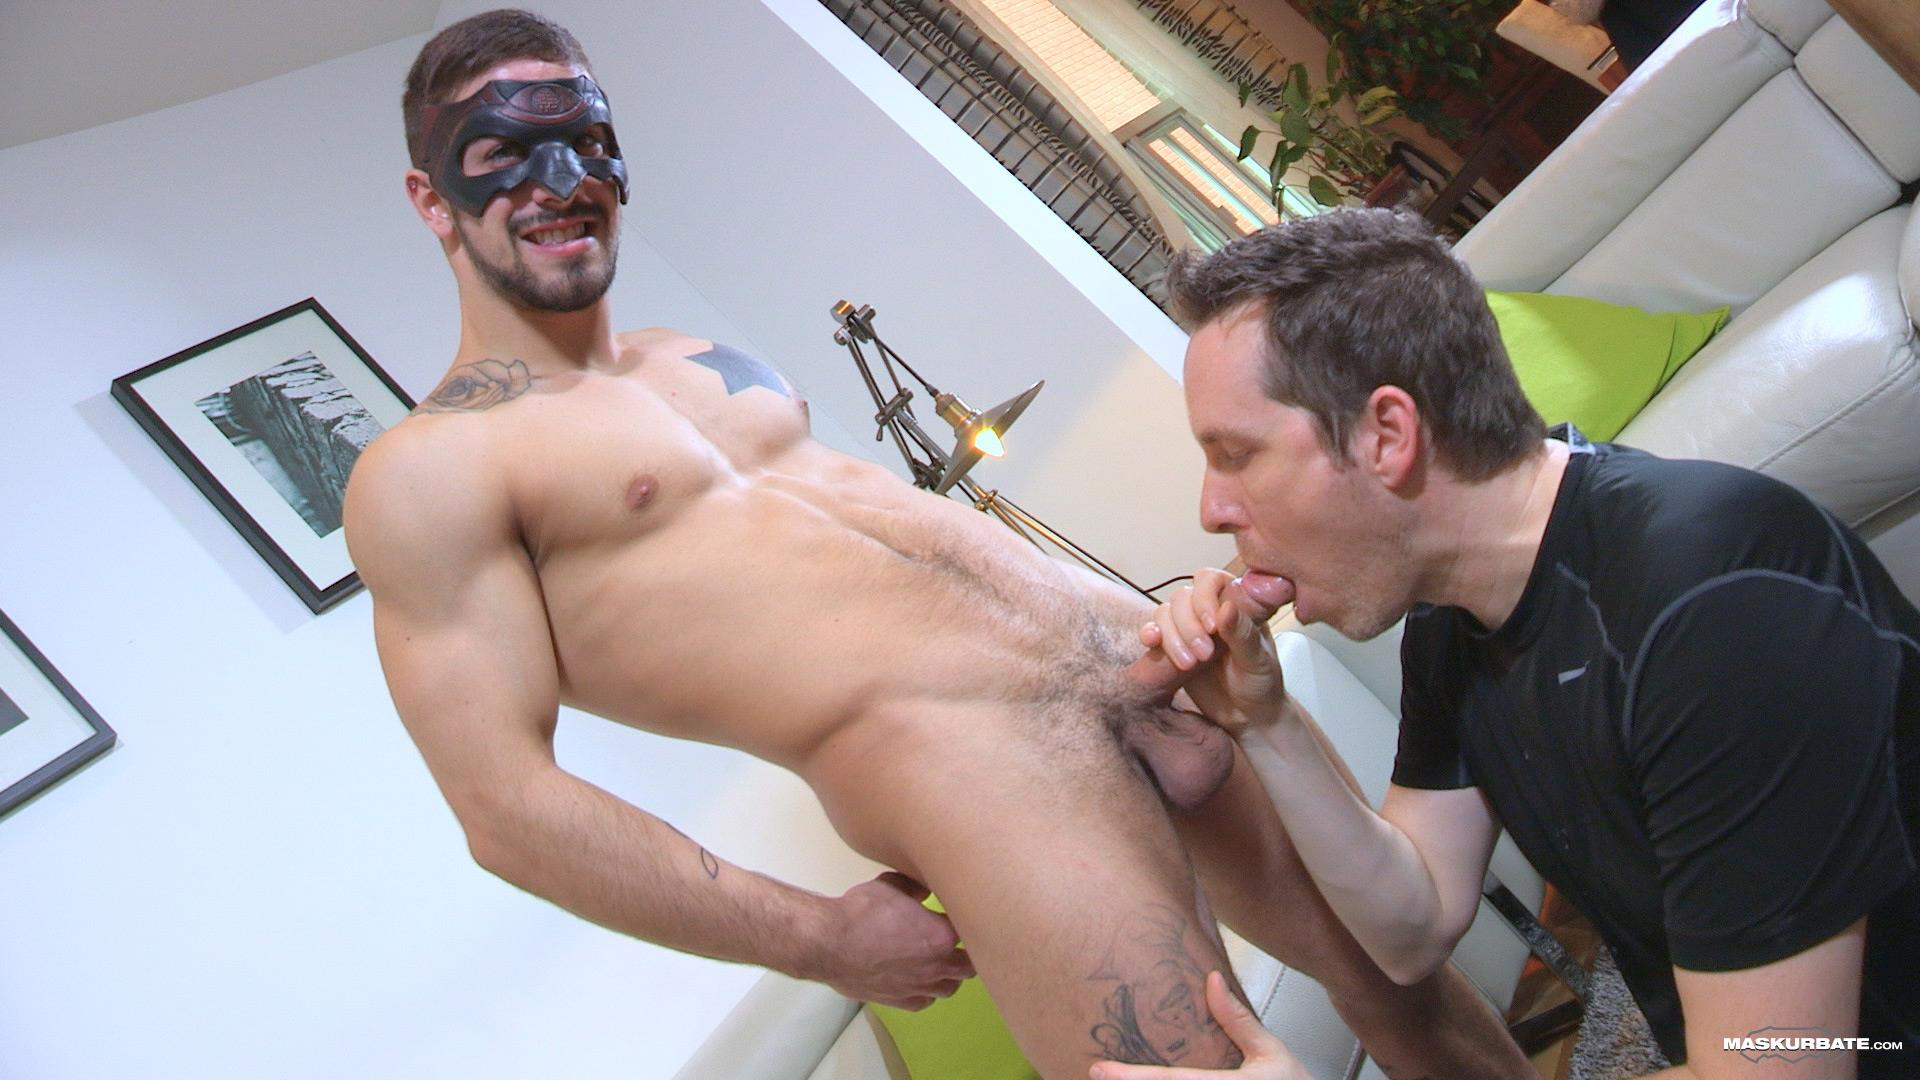 Maskurbate Carl Straight Muscle Jock With A Big Cock Amateur Gay Porn 14 Straight Muscle Hunk Gets His First Blow Job From Another Guy